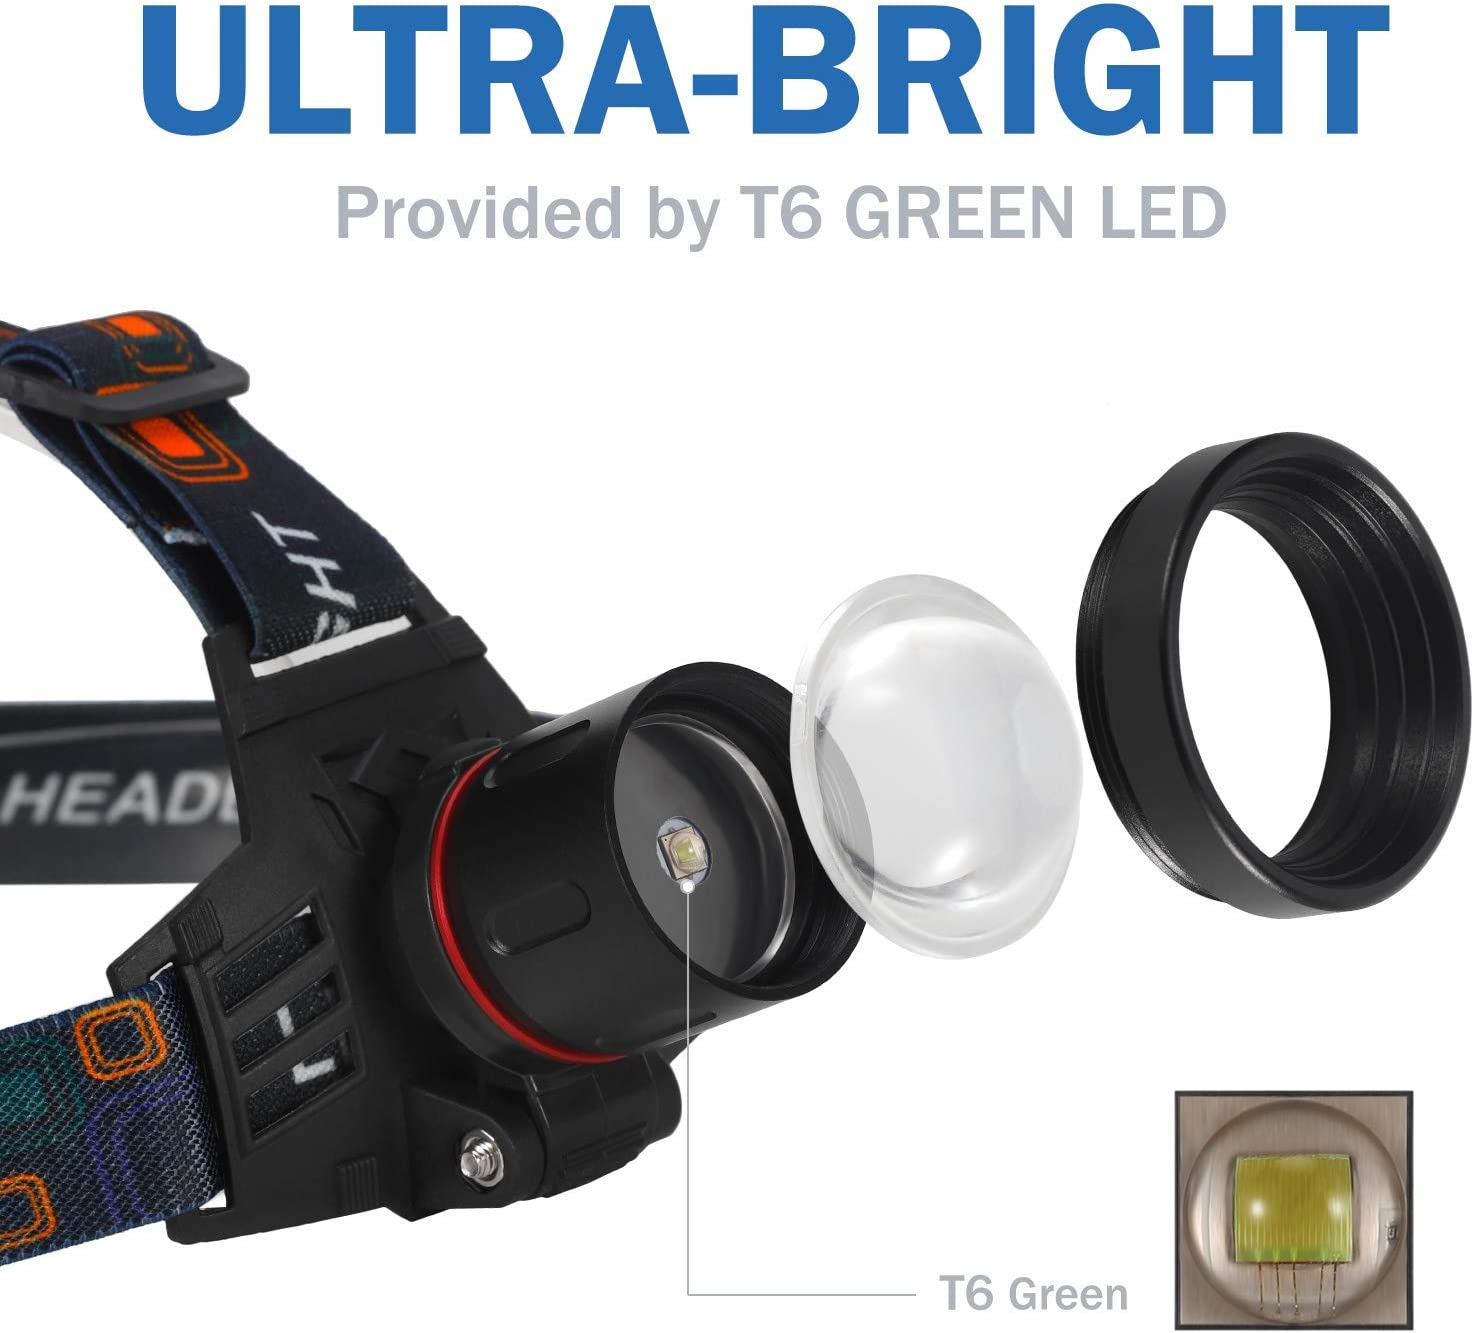 Camping LED Head Torch Green Light Headlamp Head Light-Waterproof Walking,Batteries Included Hiking Comfortable and Lightweight for Running